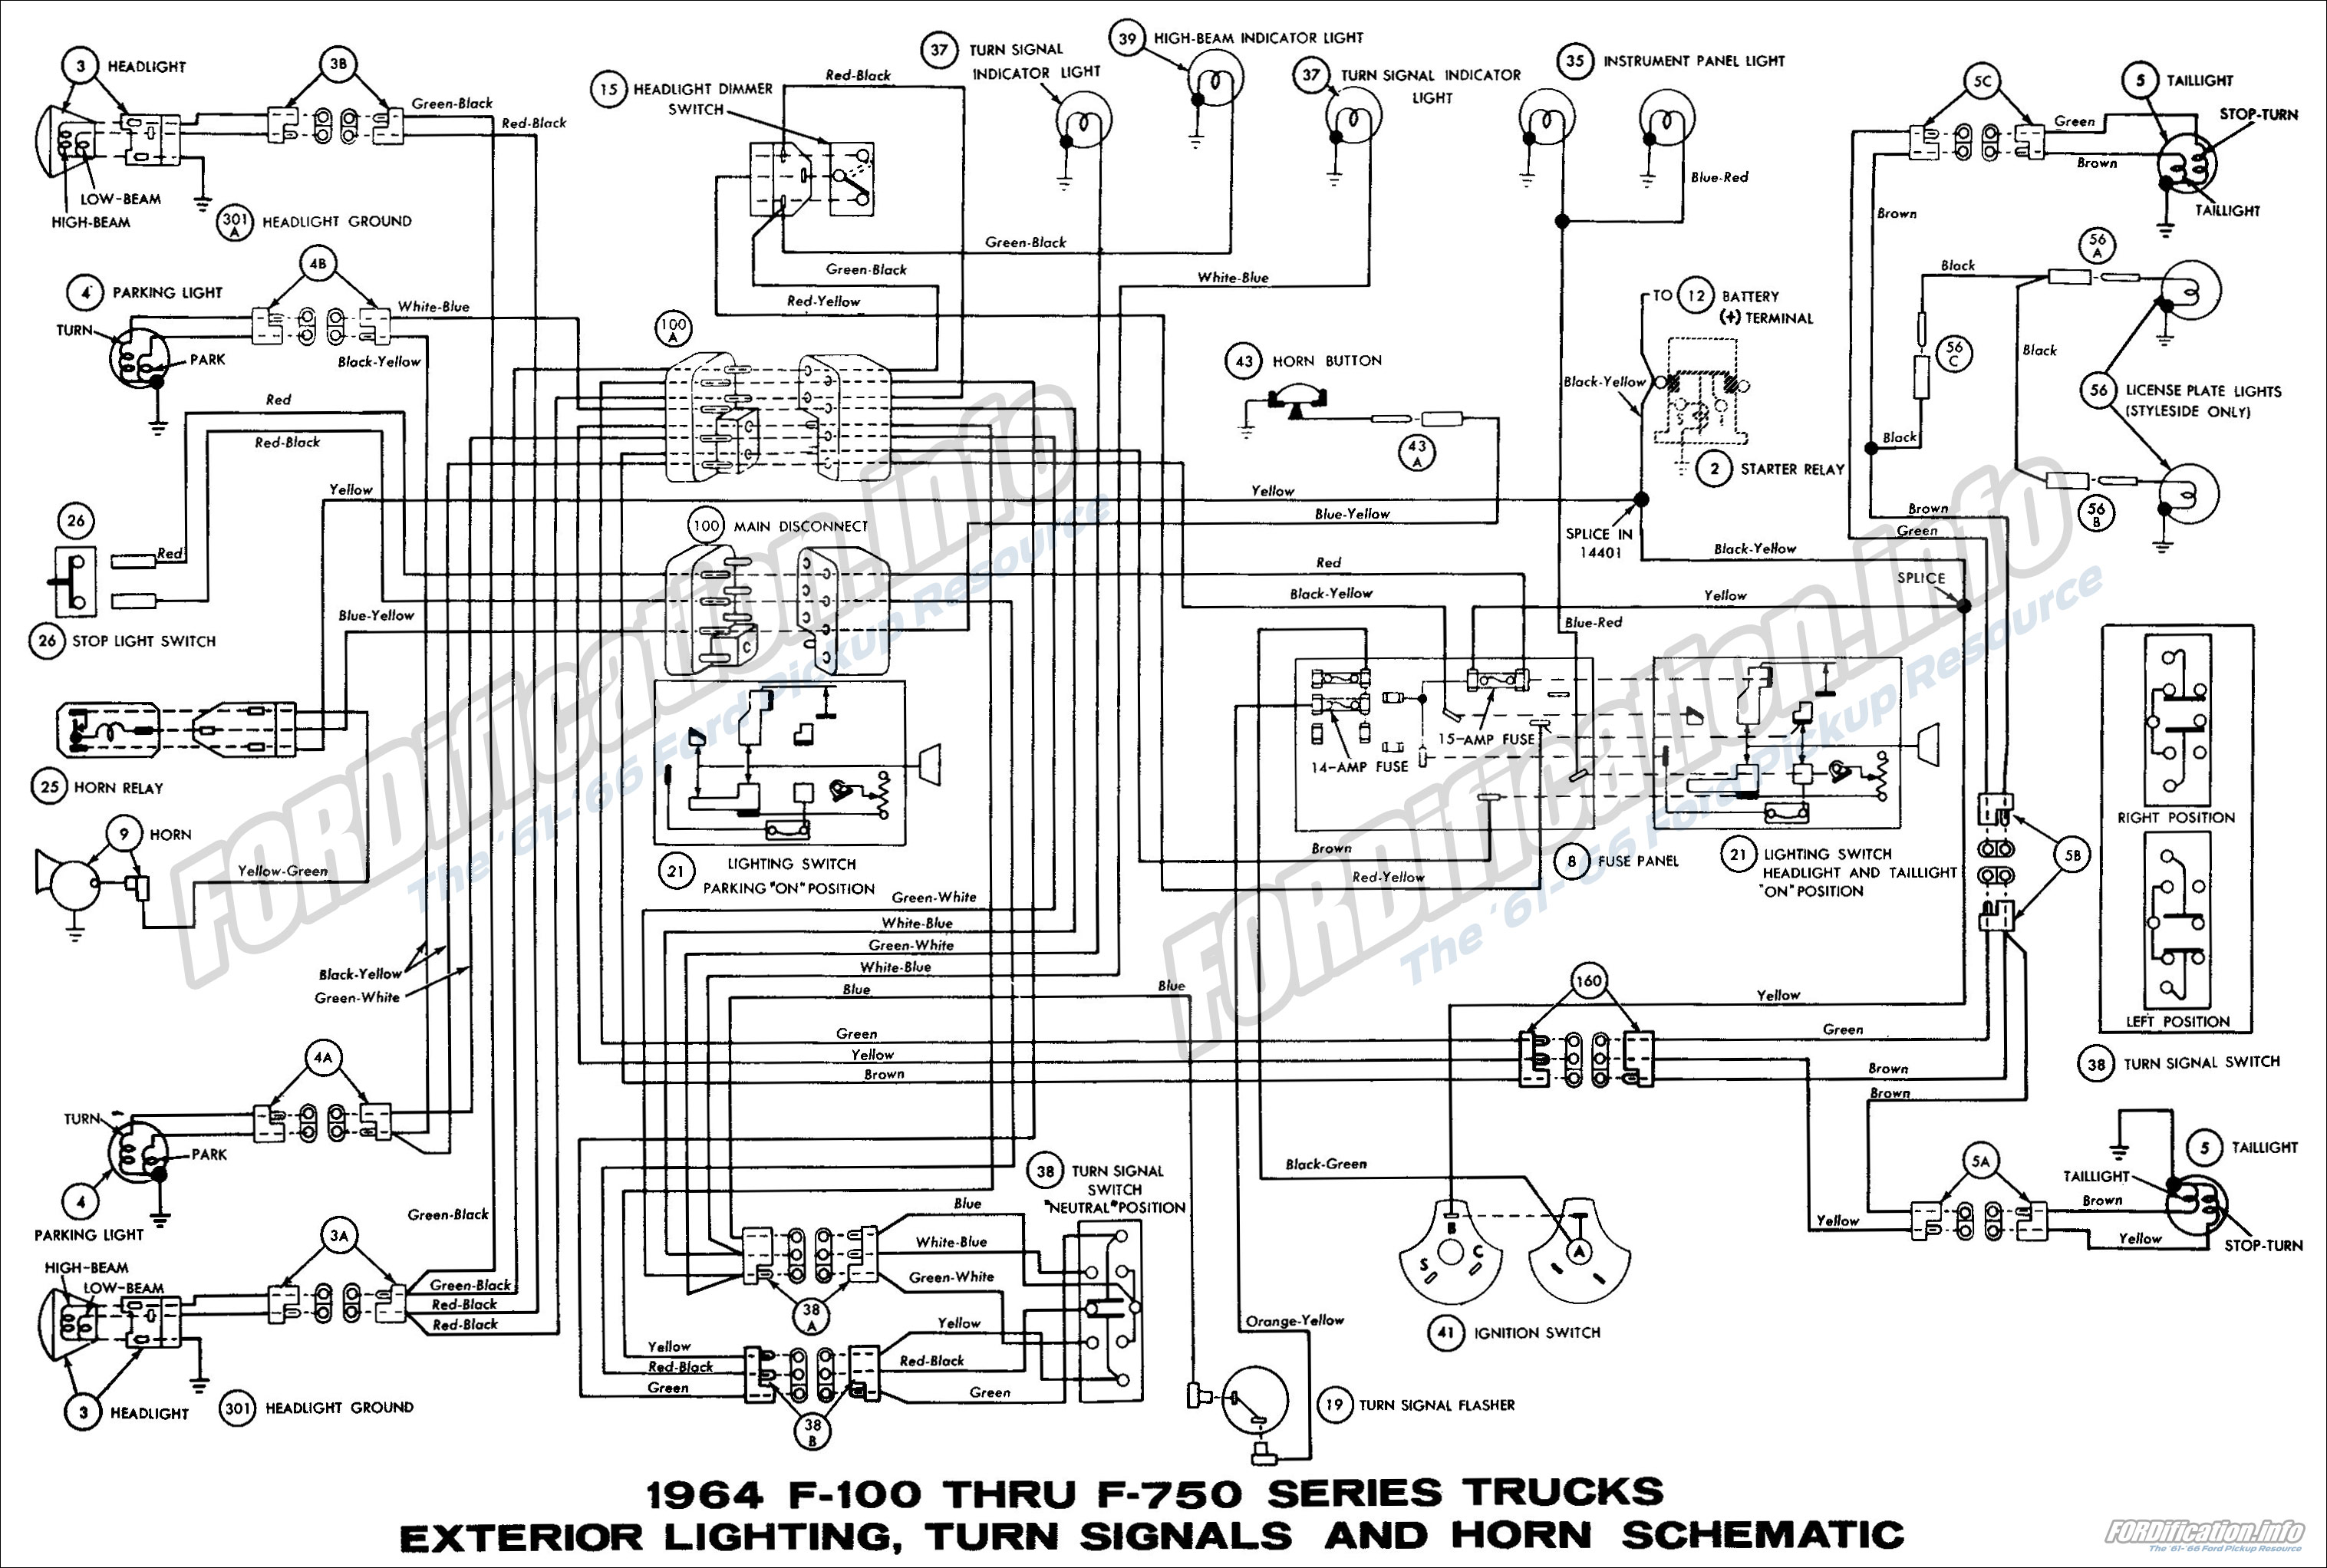 ford f100 wiring harness wiring diagram schema 1966 Ford F100 ford f100 wiring harness wiring diagram blog ford light switch pinout 1968 ford f100 turn signal